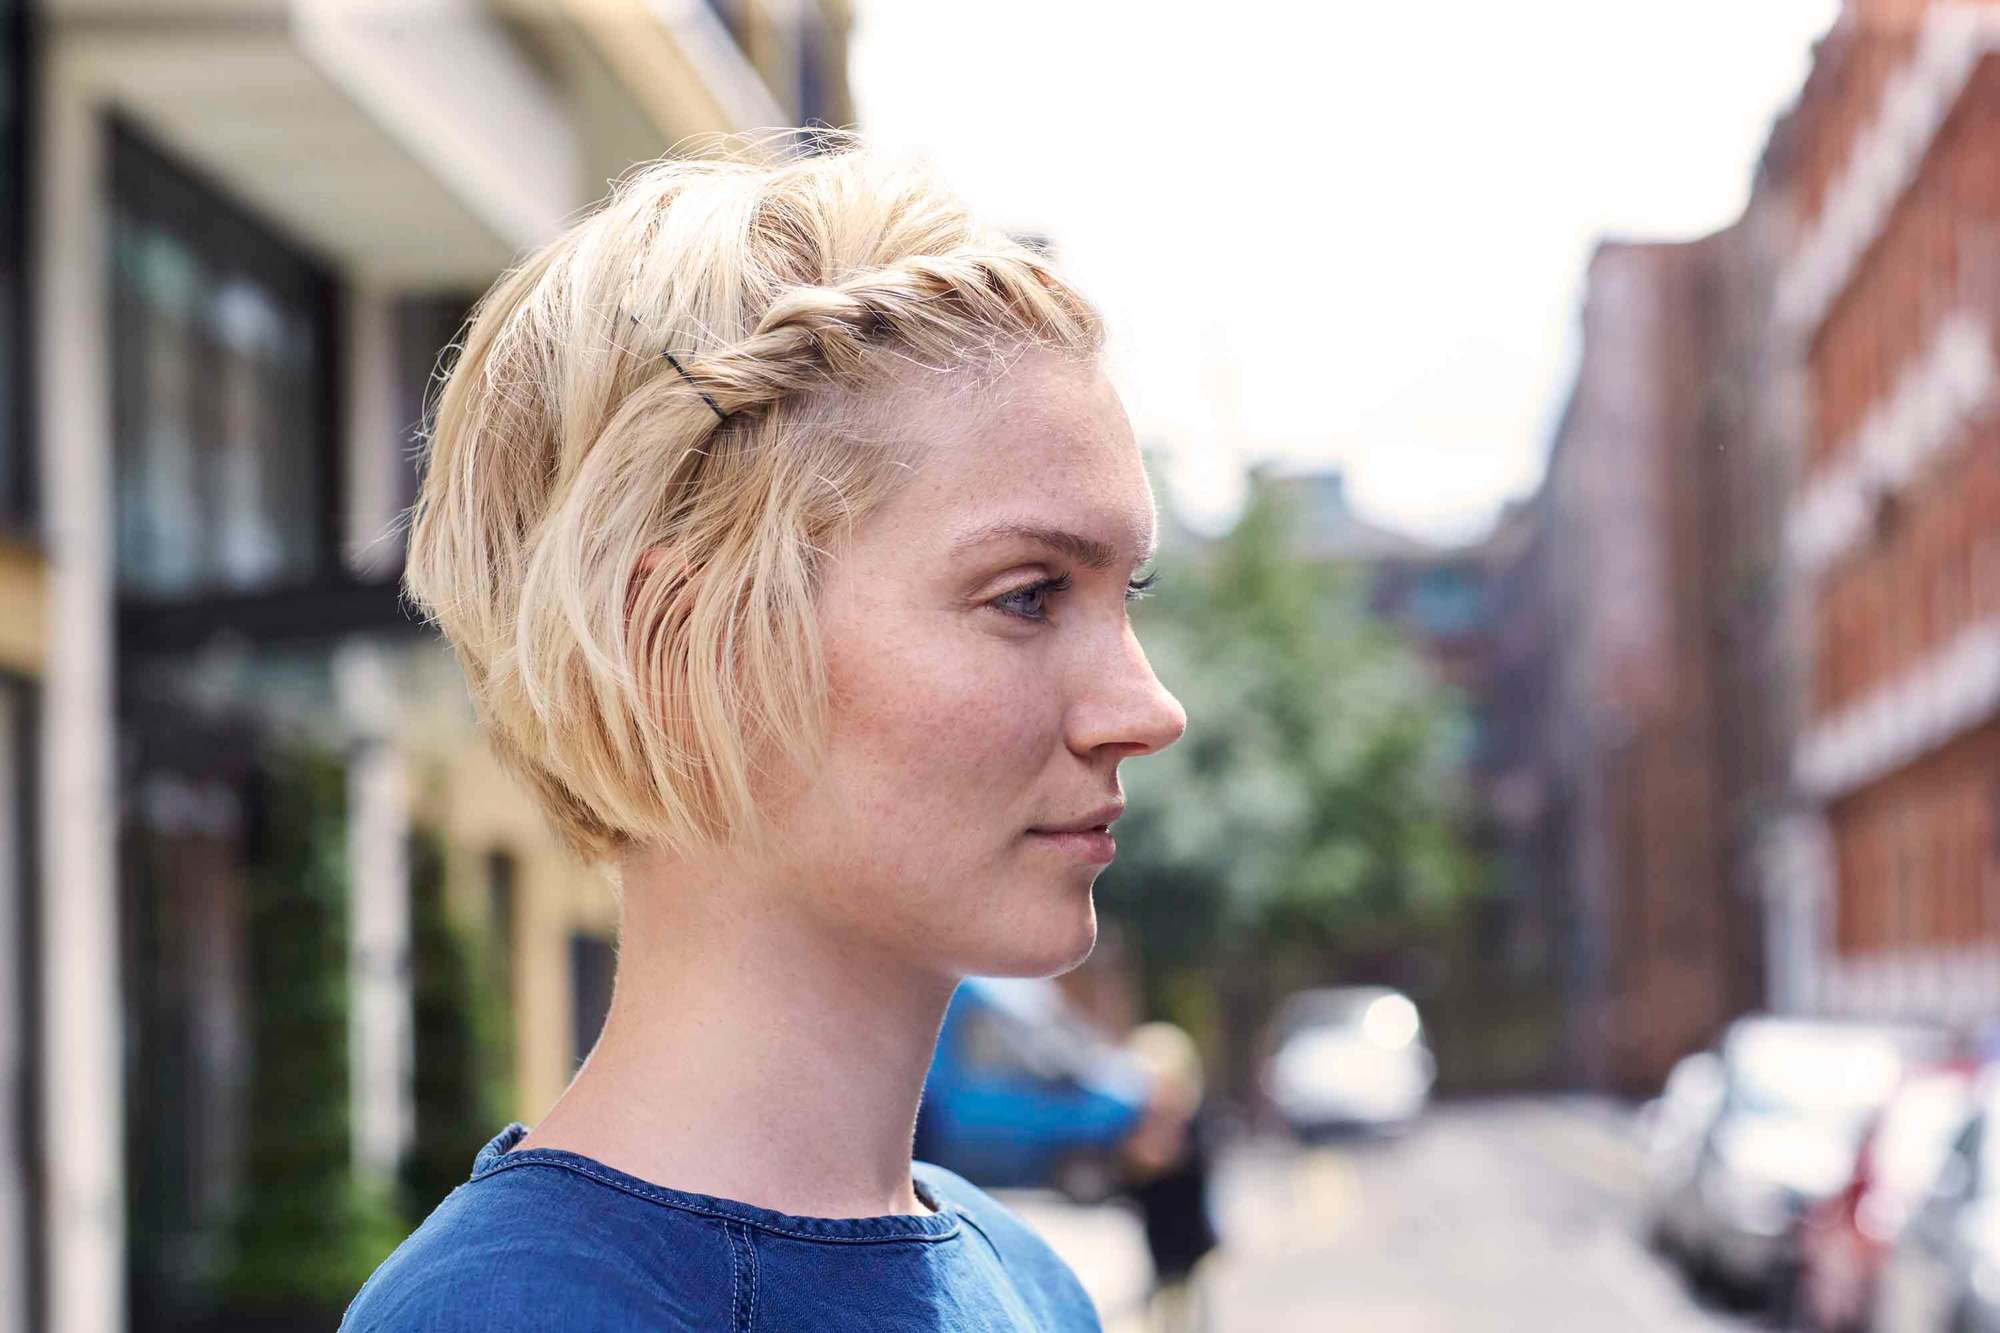 10 Best Sporty Hairstyles for Short Hair